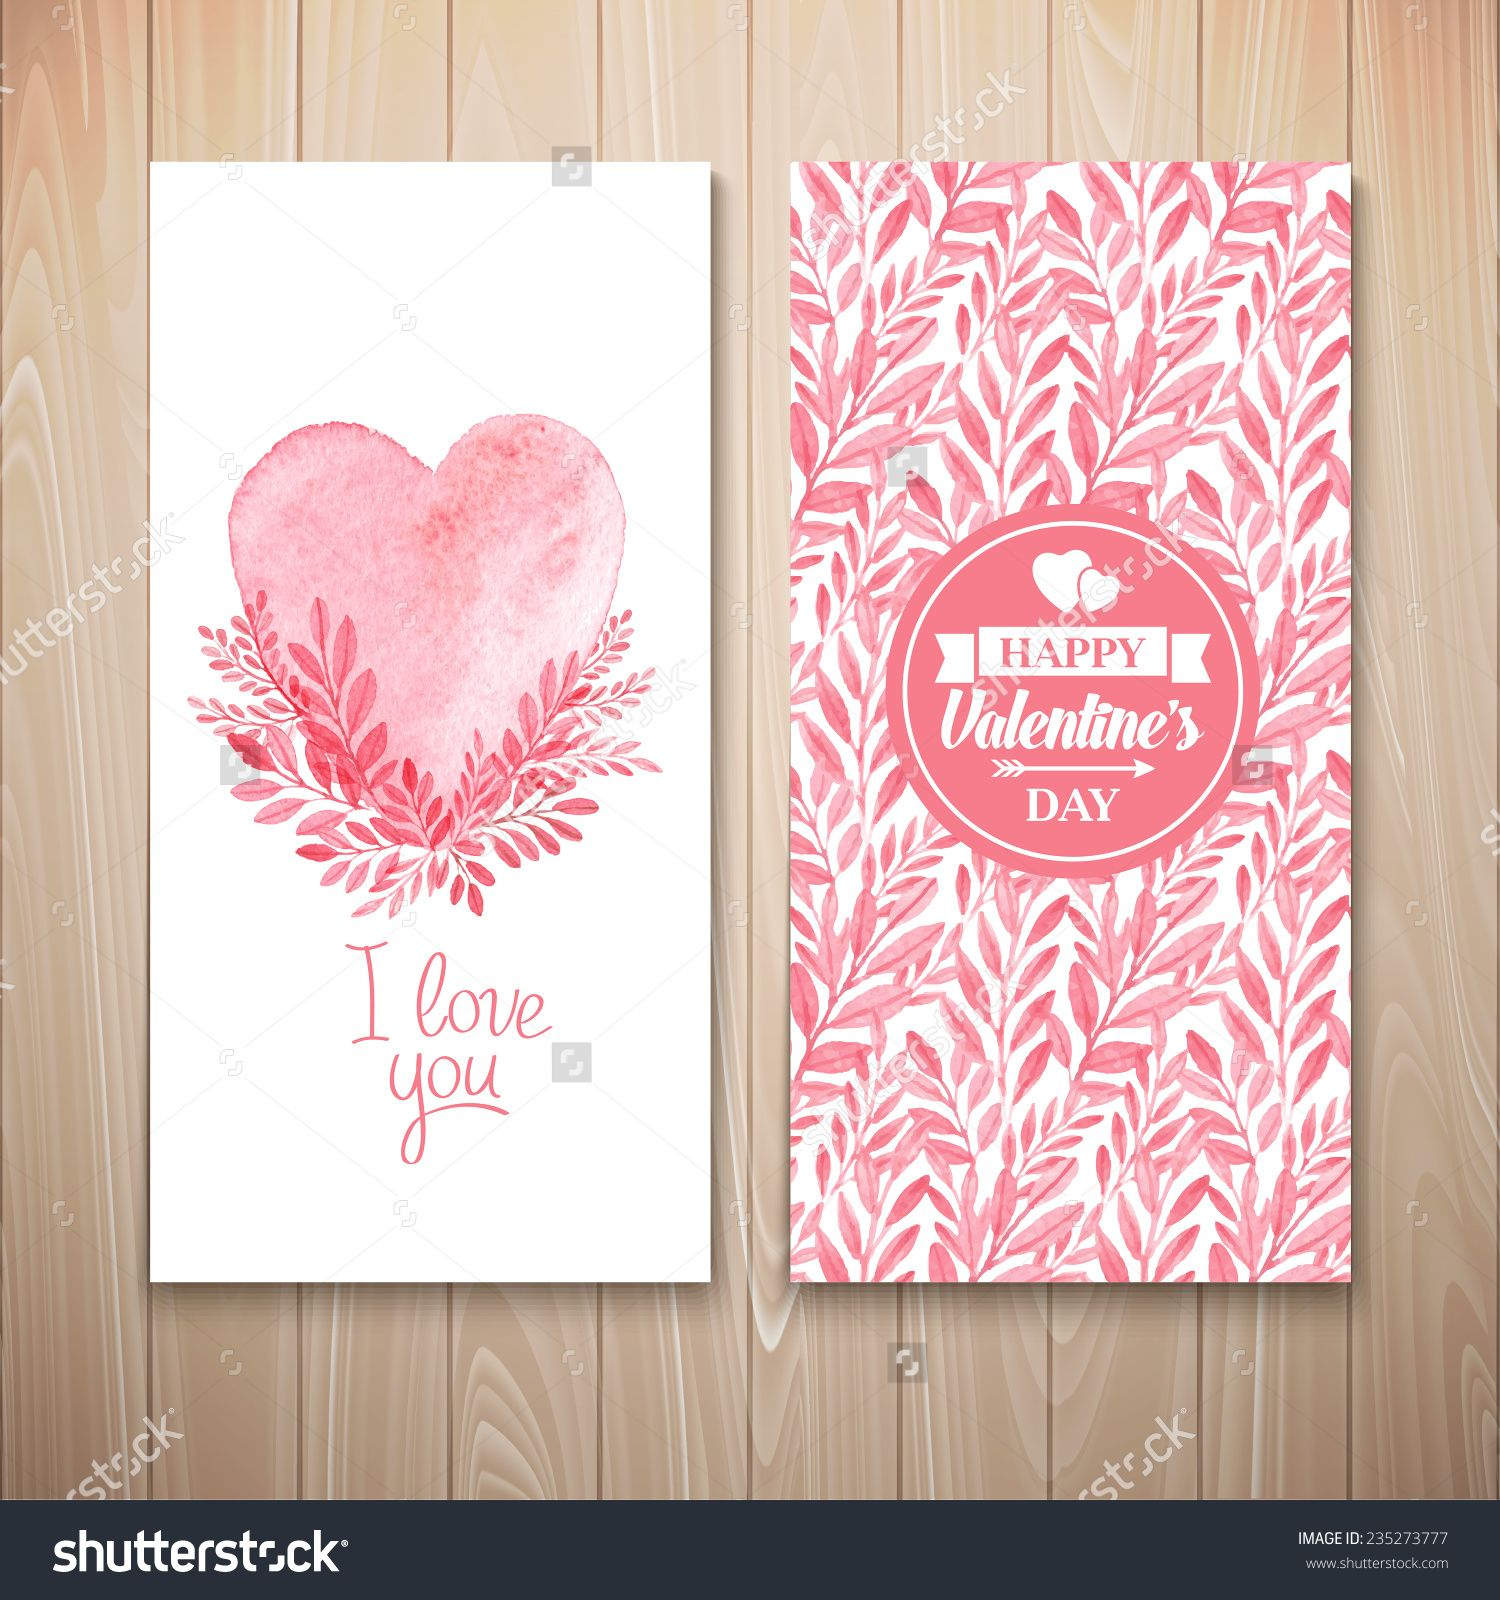 Vector Watercolor Postcard Valentine'S Day. Seamless Pattern - 235273777 : Shutterstock